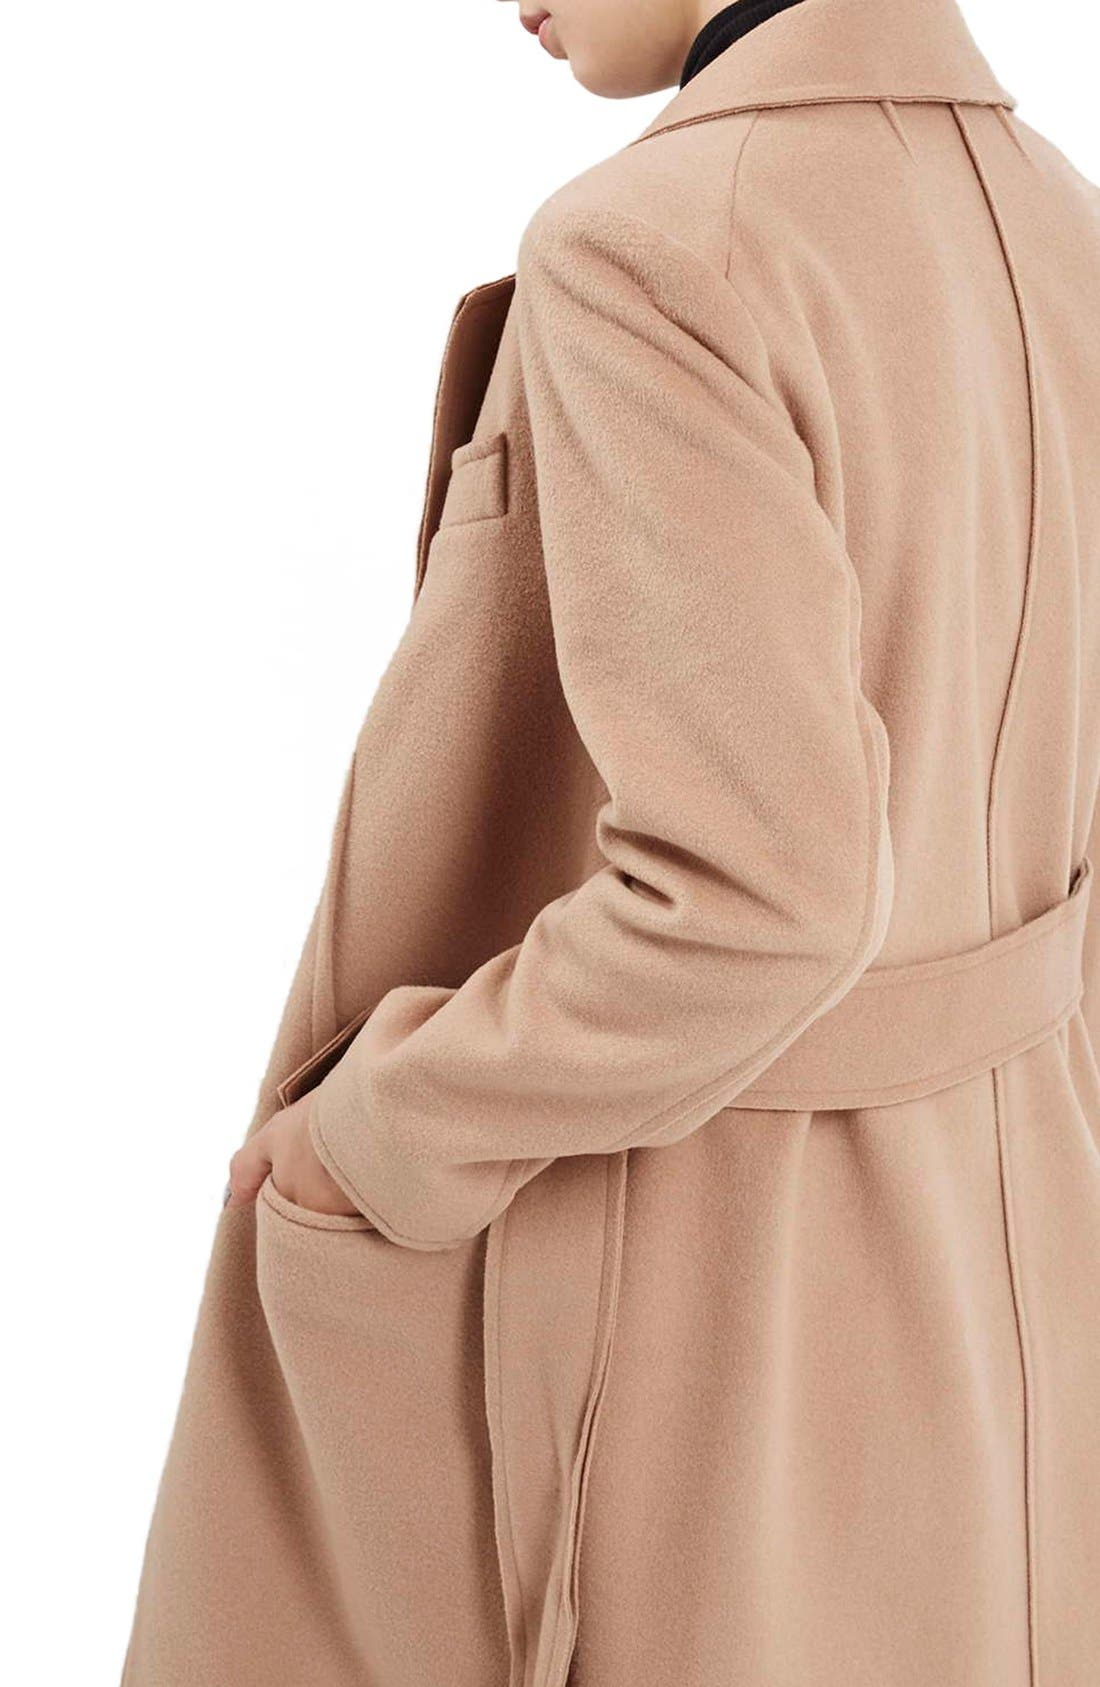 TOPSHOP BOUTIQUE, Wrap Coat, Alternate thumbnail 2, color, 252